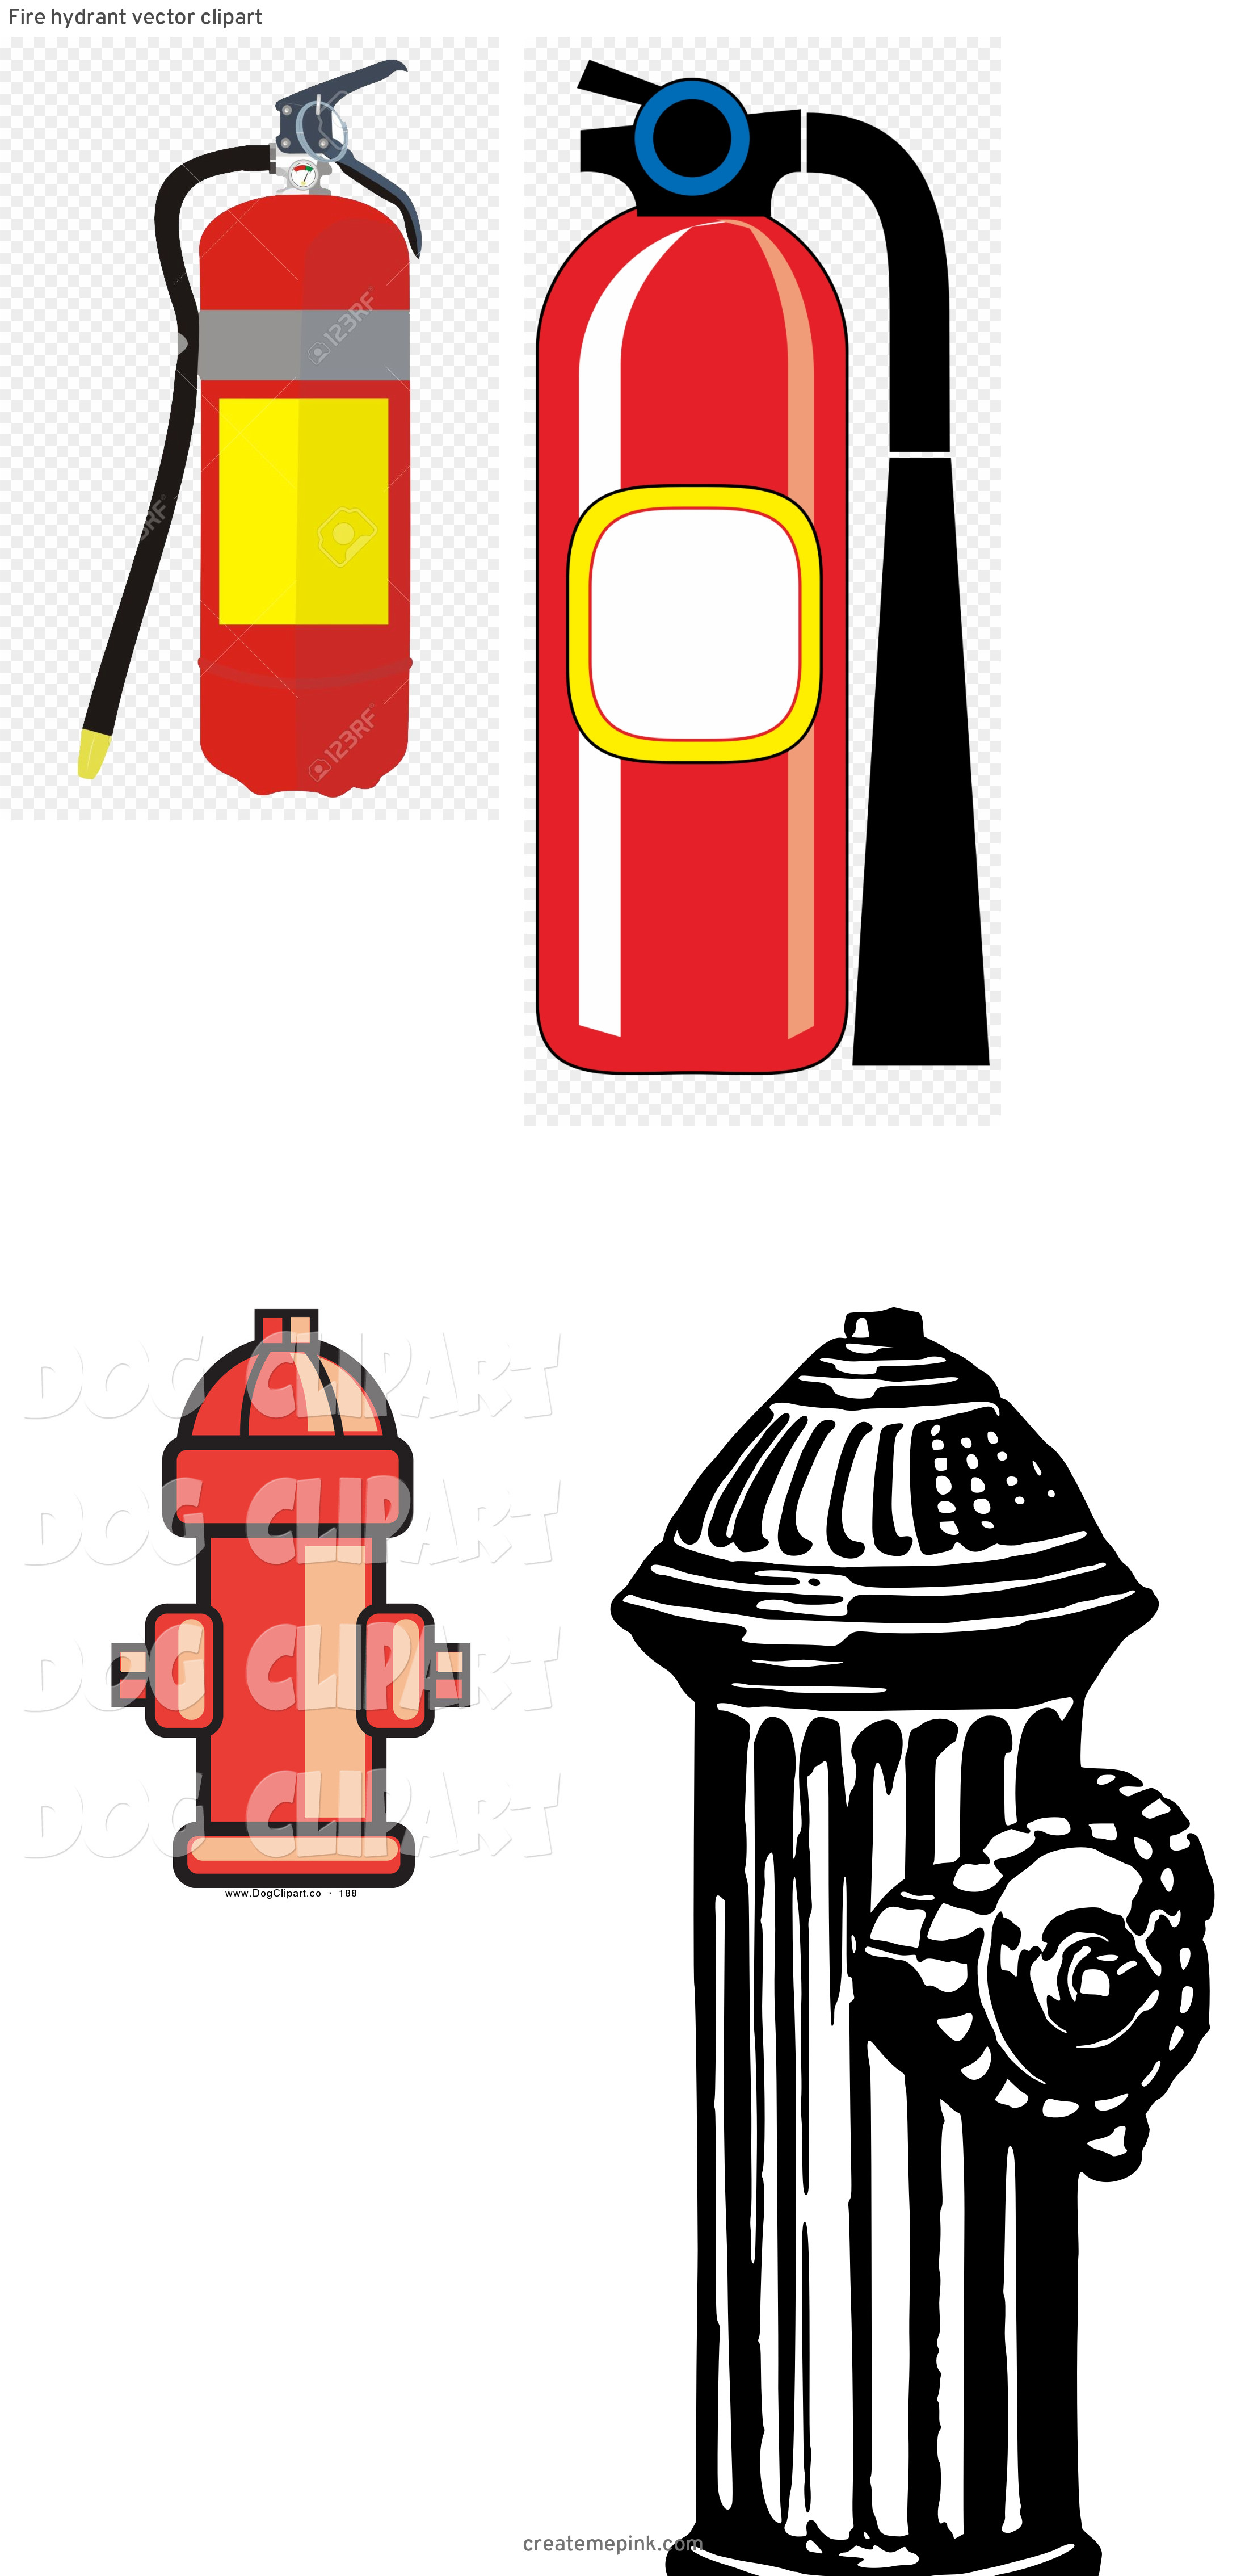 Fire Hydrant Vector Clip Art: Fire Hydrant Vector Clipart